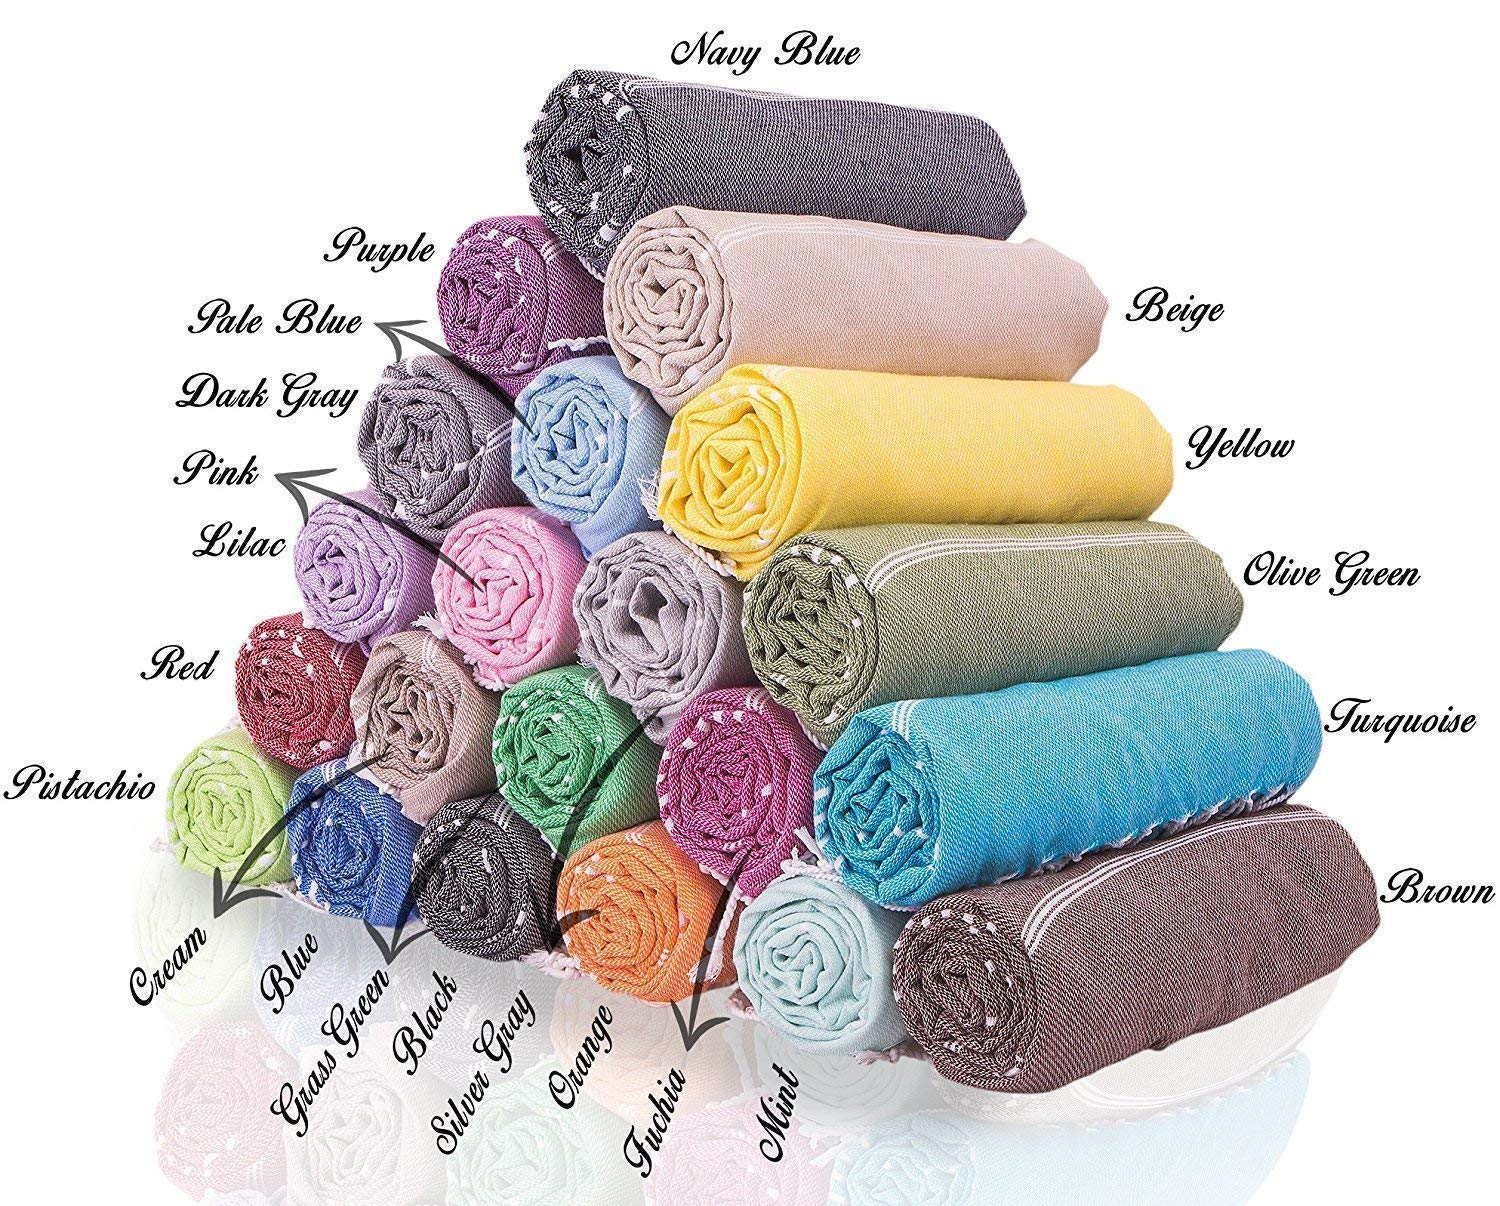 (Set of 6 XL)21 Color Variants Turkish Cotton Peshtemal Towels, Bath, Hand, Face, Gym, Fitness, Beach, Pool, Spa, Hammam Sheet with Stripes - Fast Drying and Absorbent - Choose Colors as you wish!